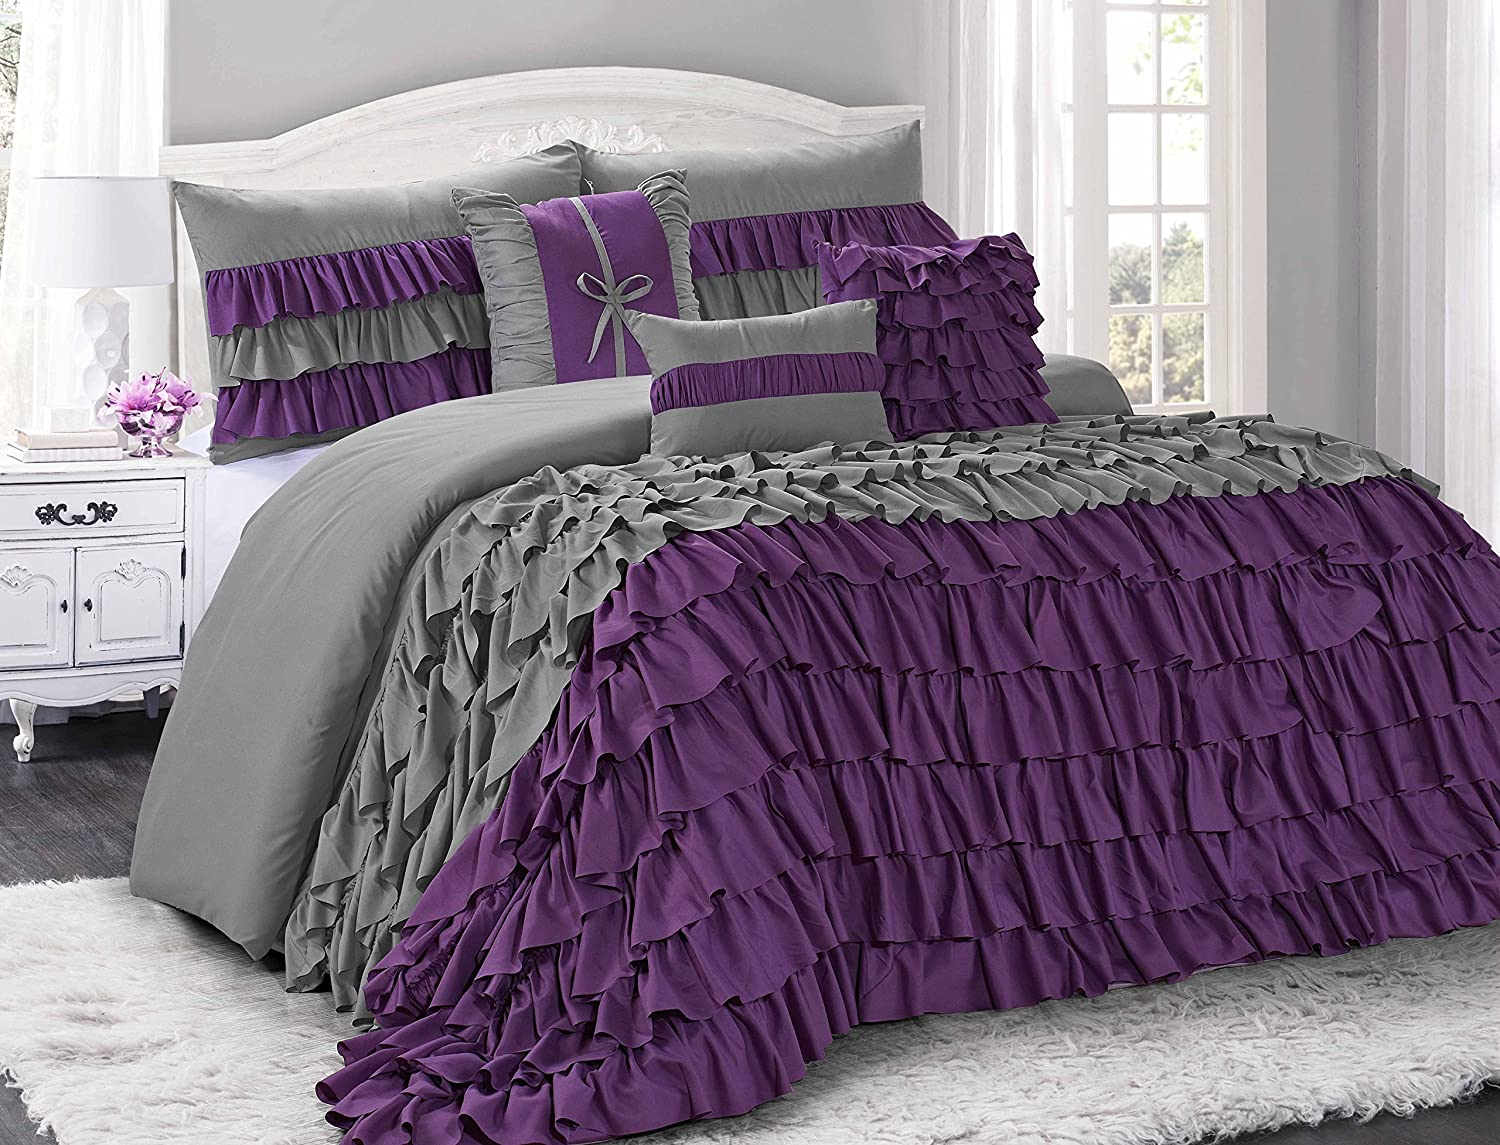 Amazoncom 7 Piece BRISE Double Color Ruffled Comforter SetQueen